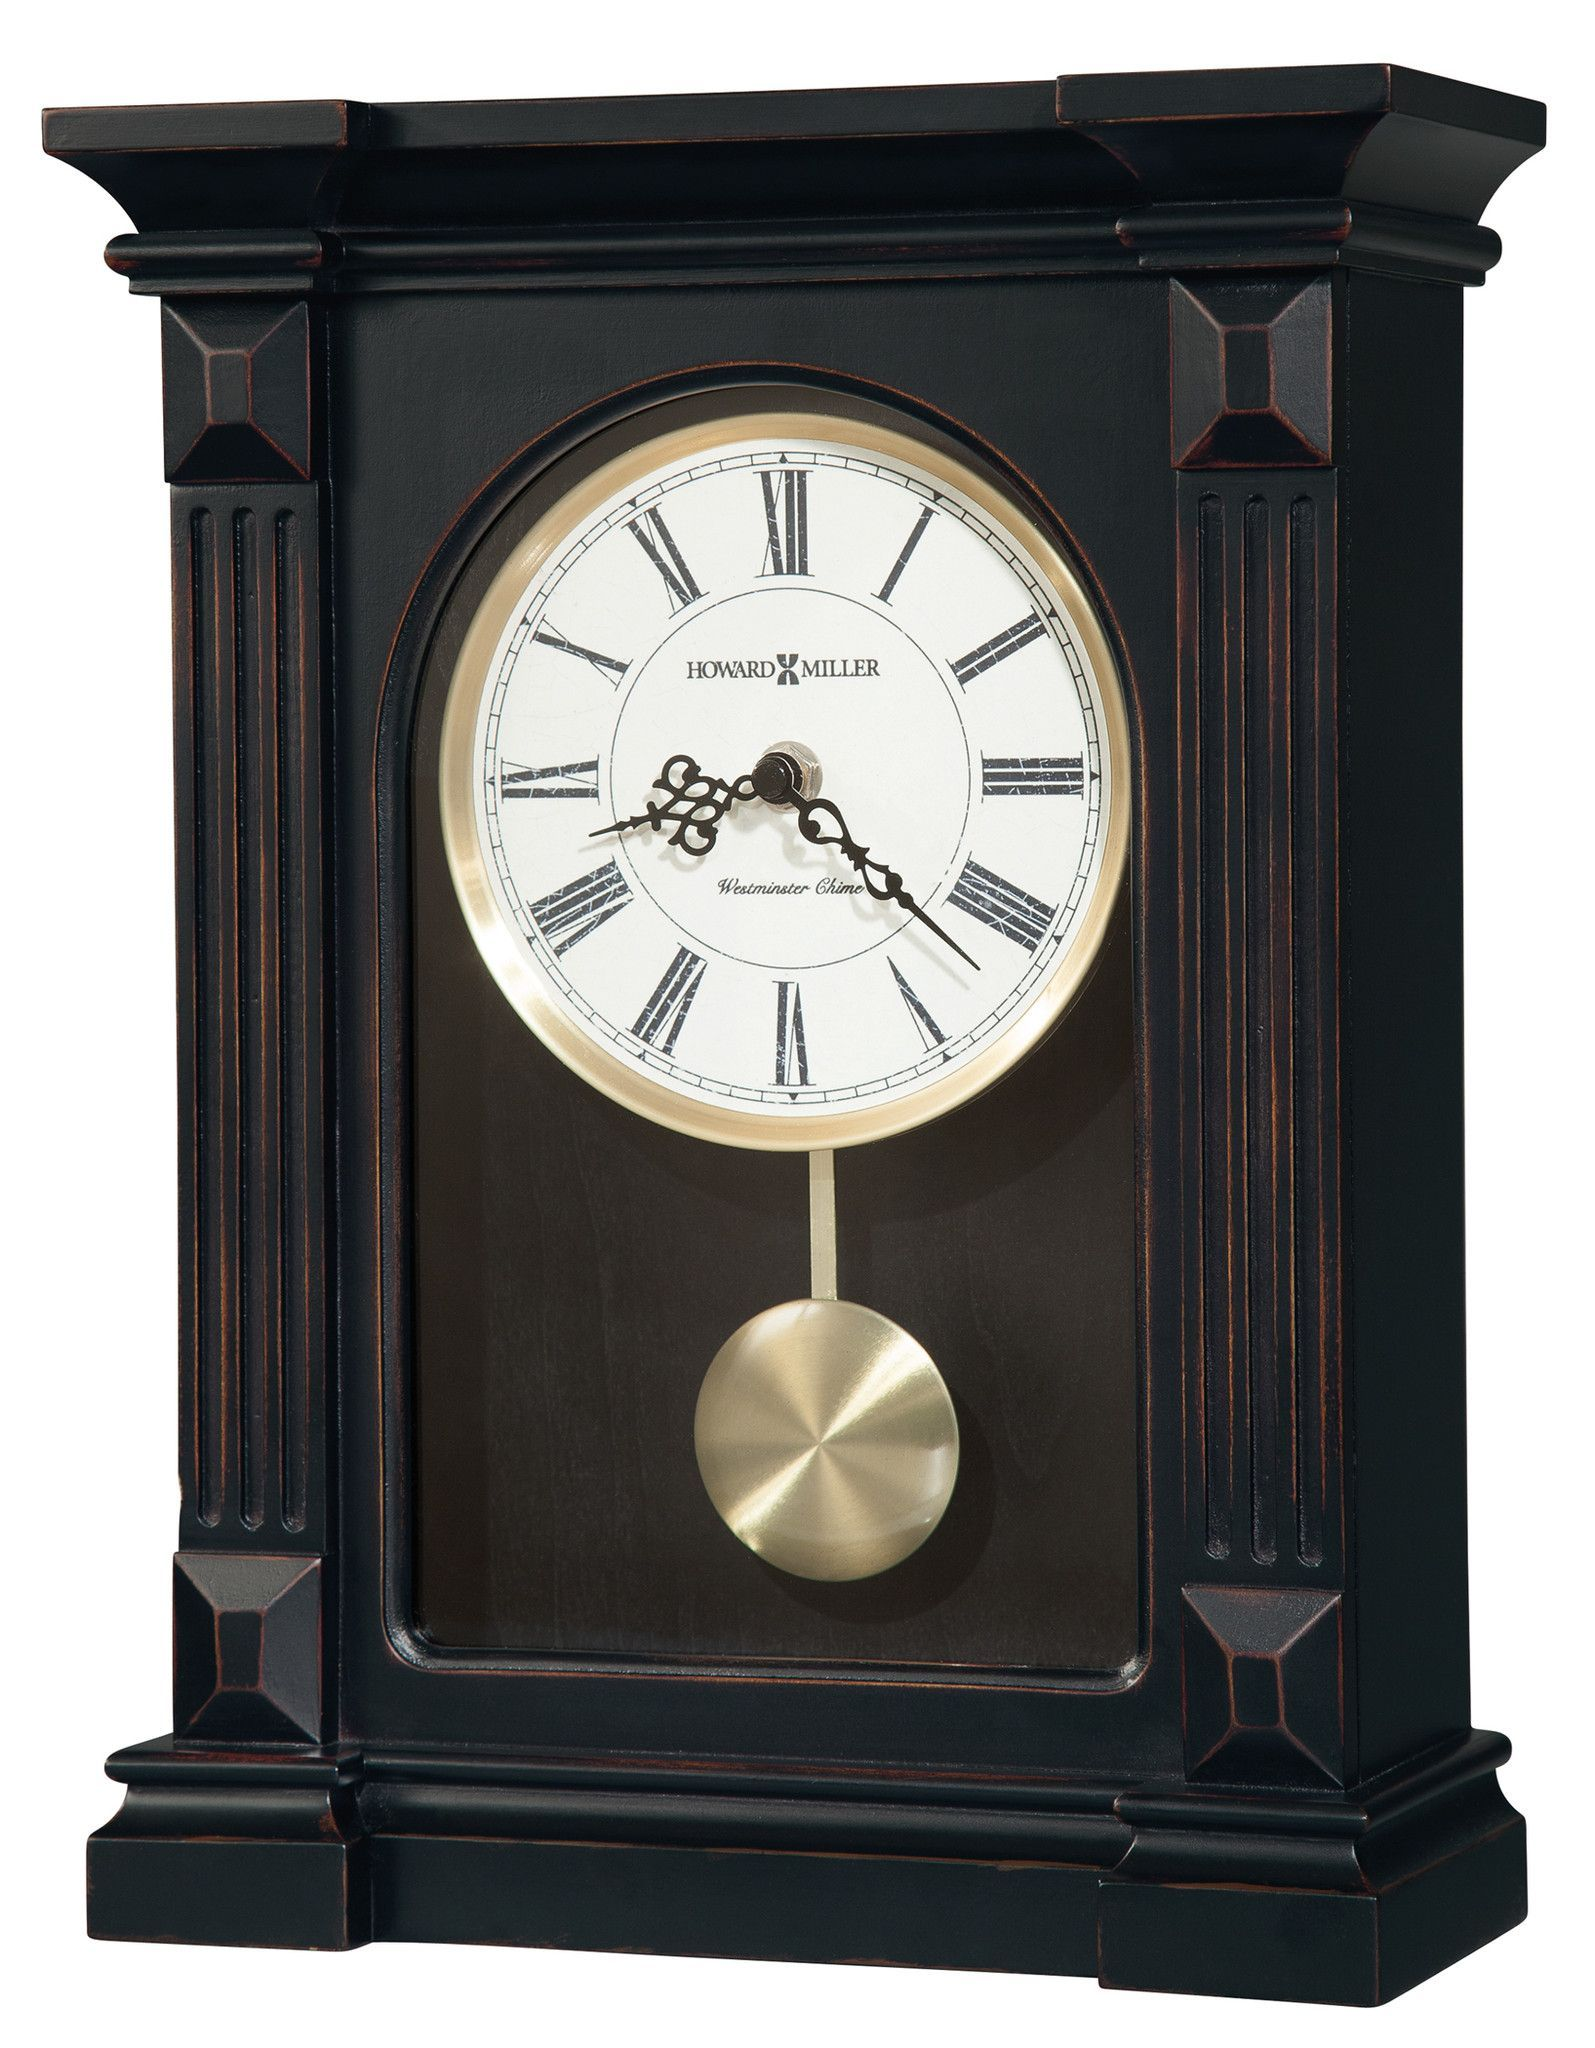 Grandfather Pendulum Clock Westminster 4 Chime Wall Battery Antique Roman Number